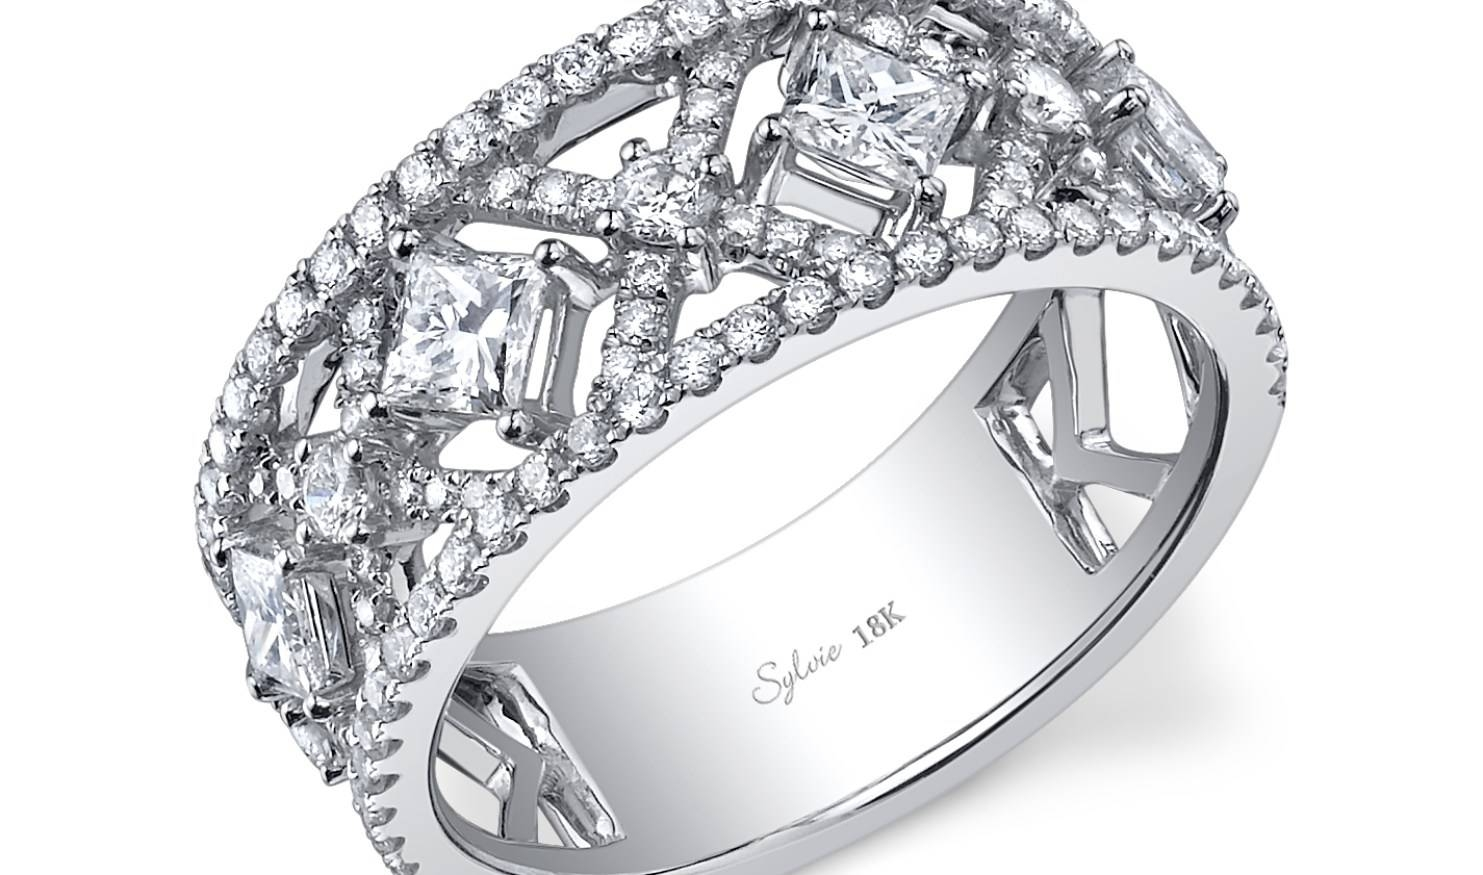 Engagement Rings : Cool Black Tungsten Engagement Rings For Her Inside Tungsten Engagement Rings For Her (View 11 of 15)